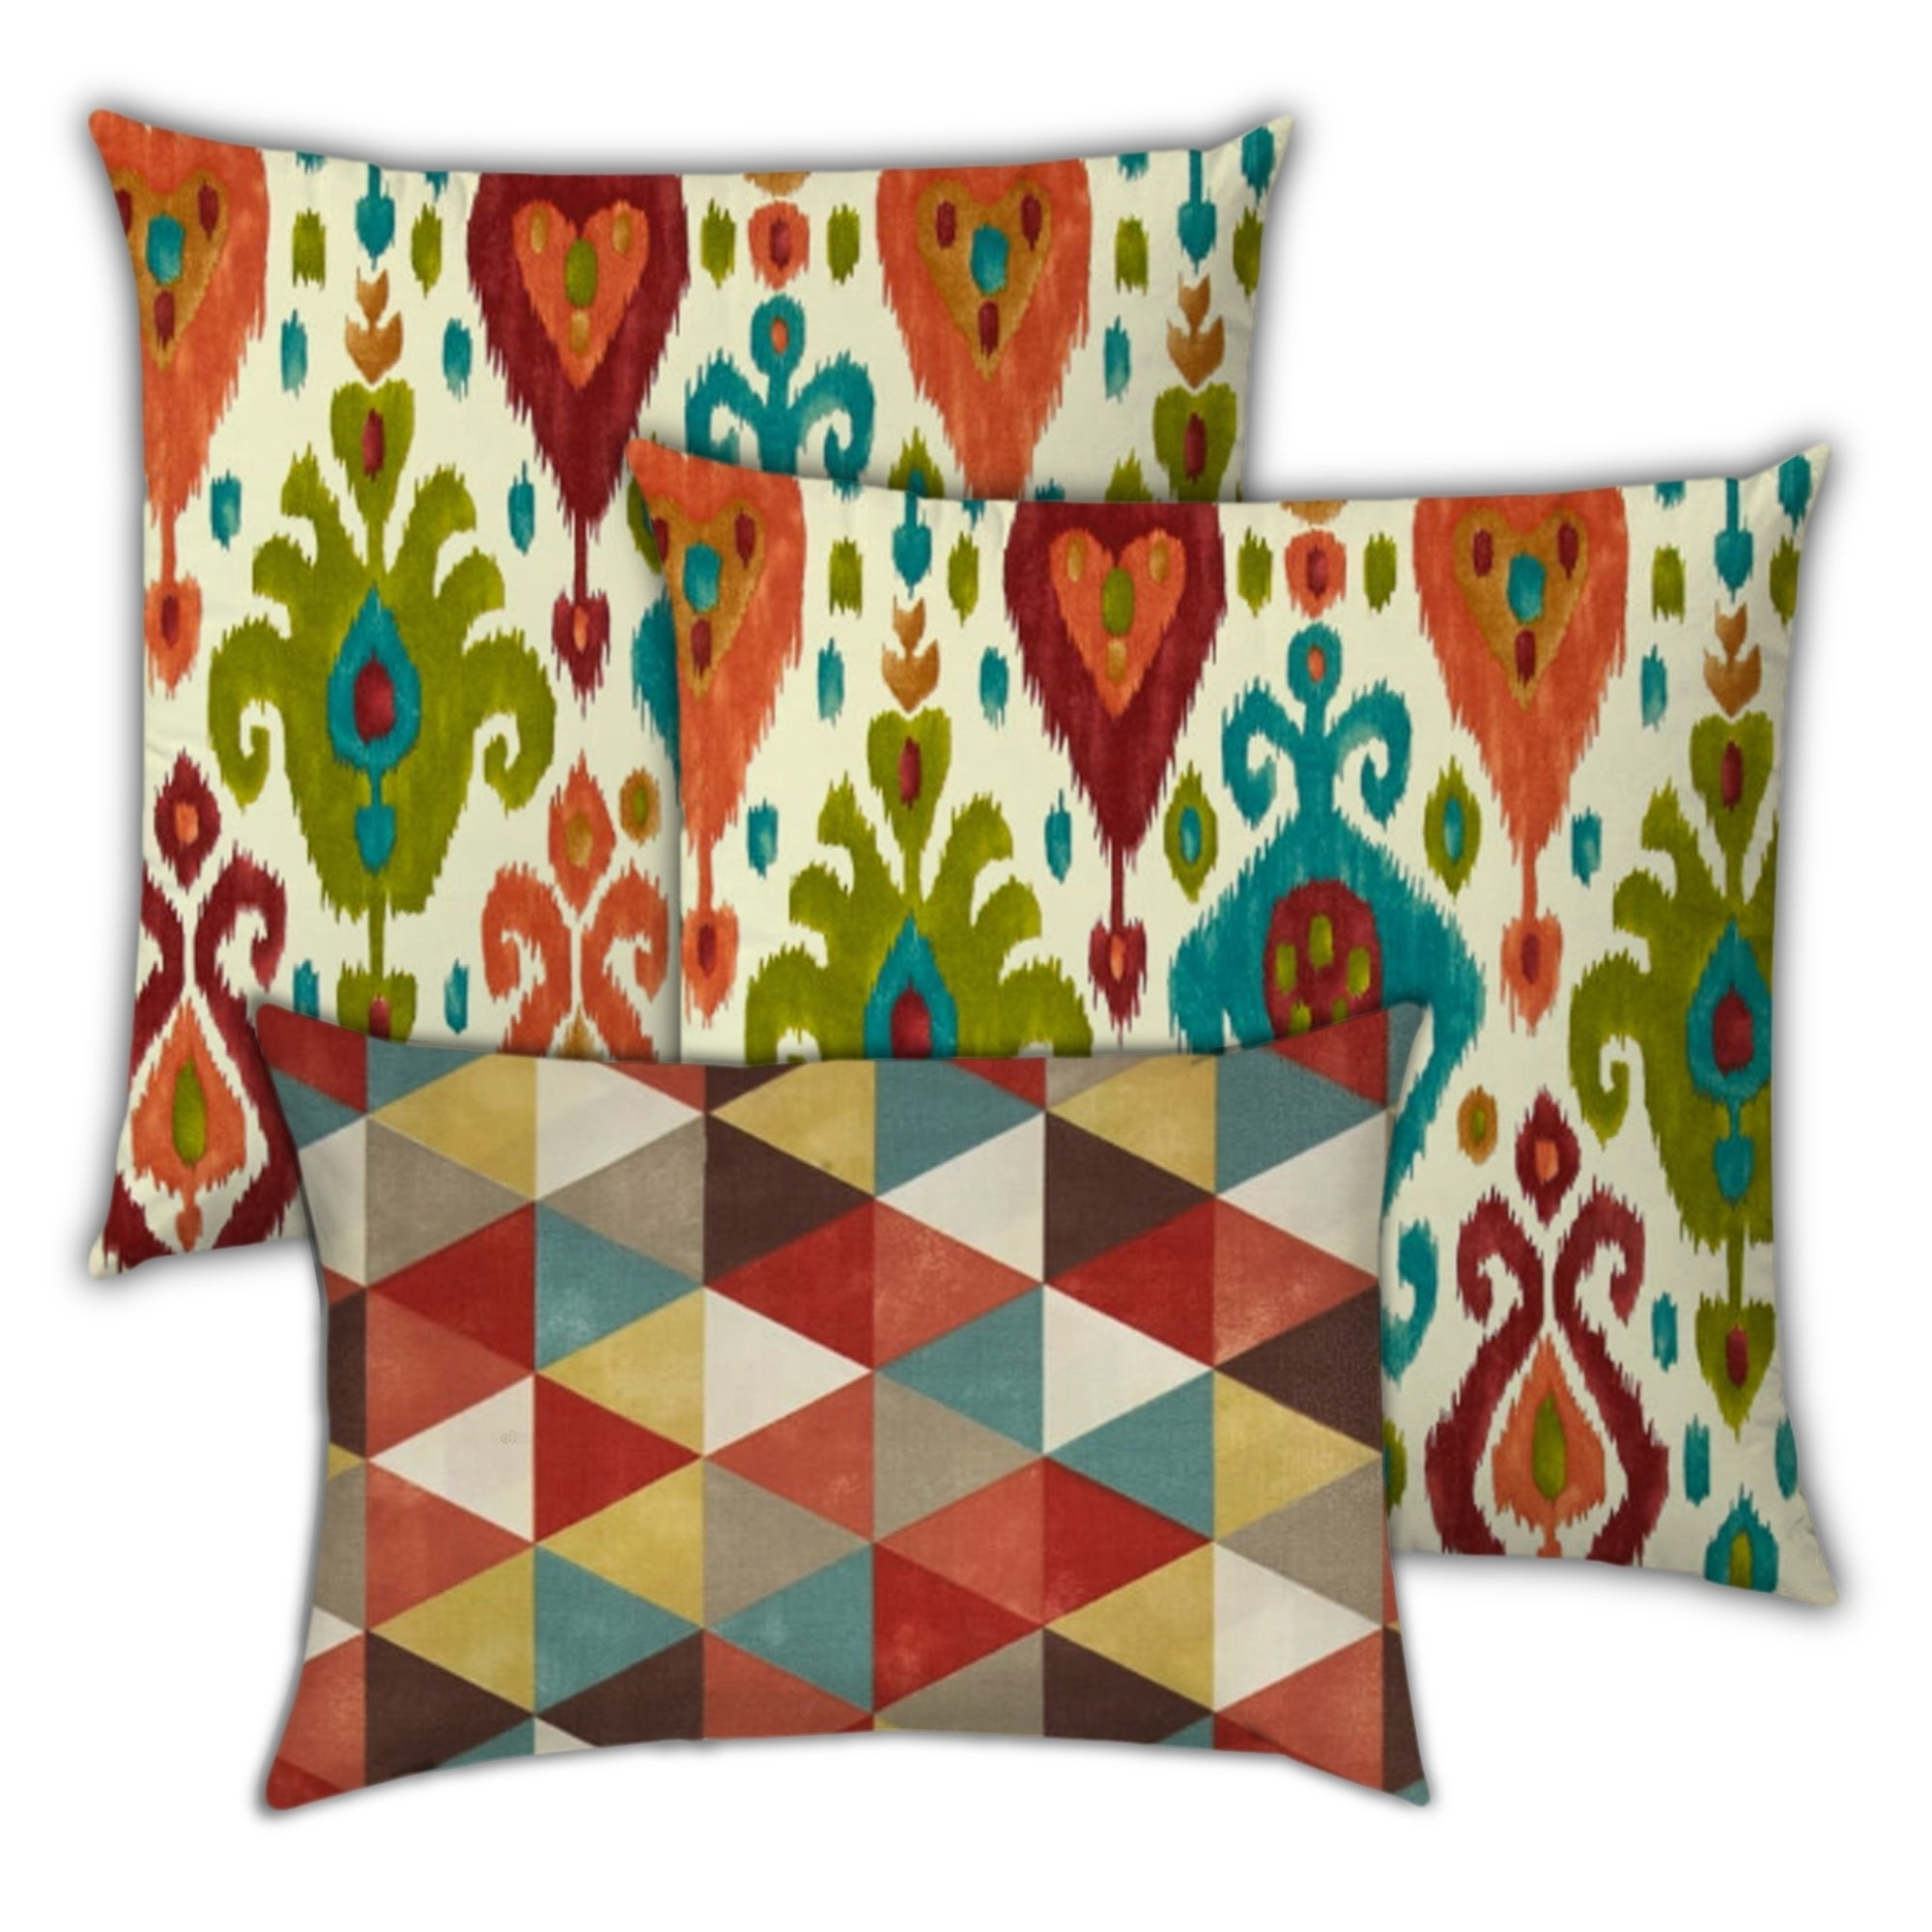 Joita Home Indian Summers Indoor Outdoor Zippered Pillow Cover With Insert Set Of 2 Large 1 Lumbar On Sale Overstock 31222110